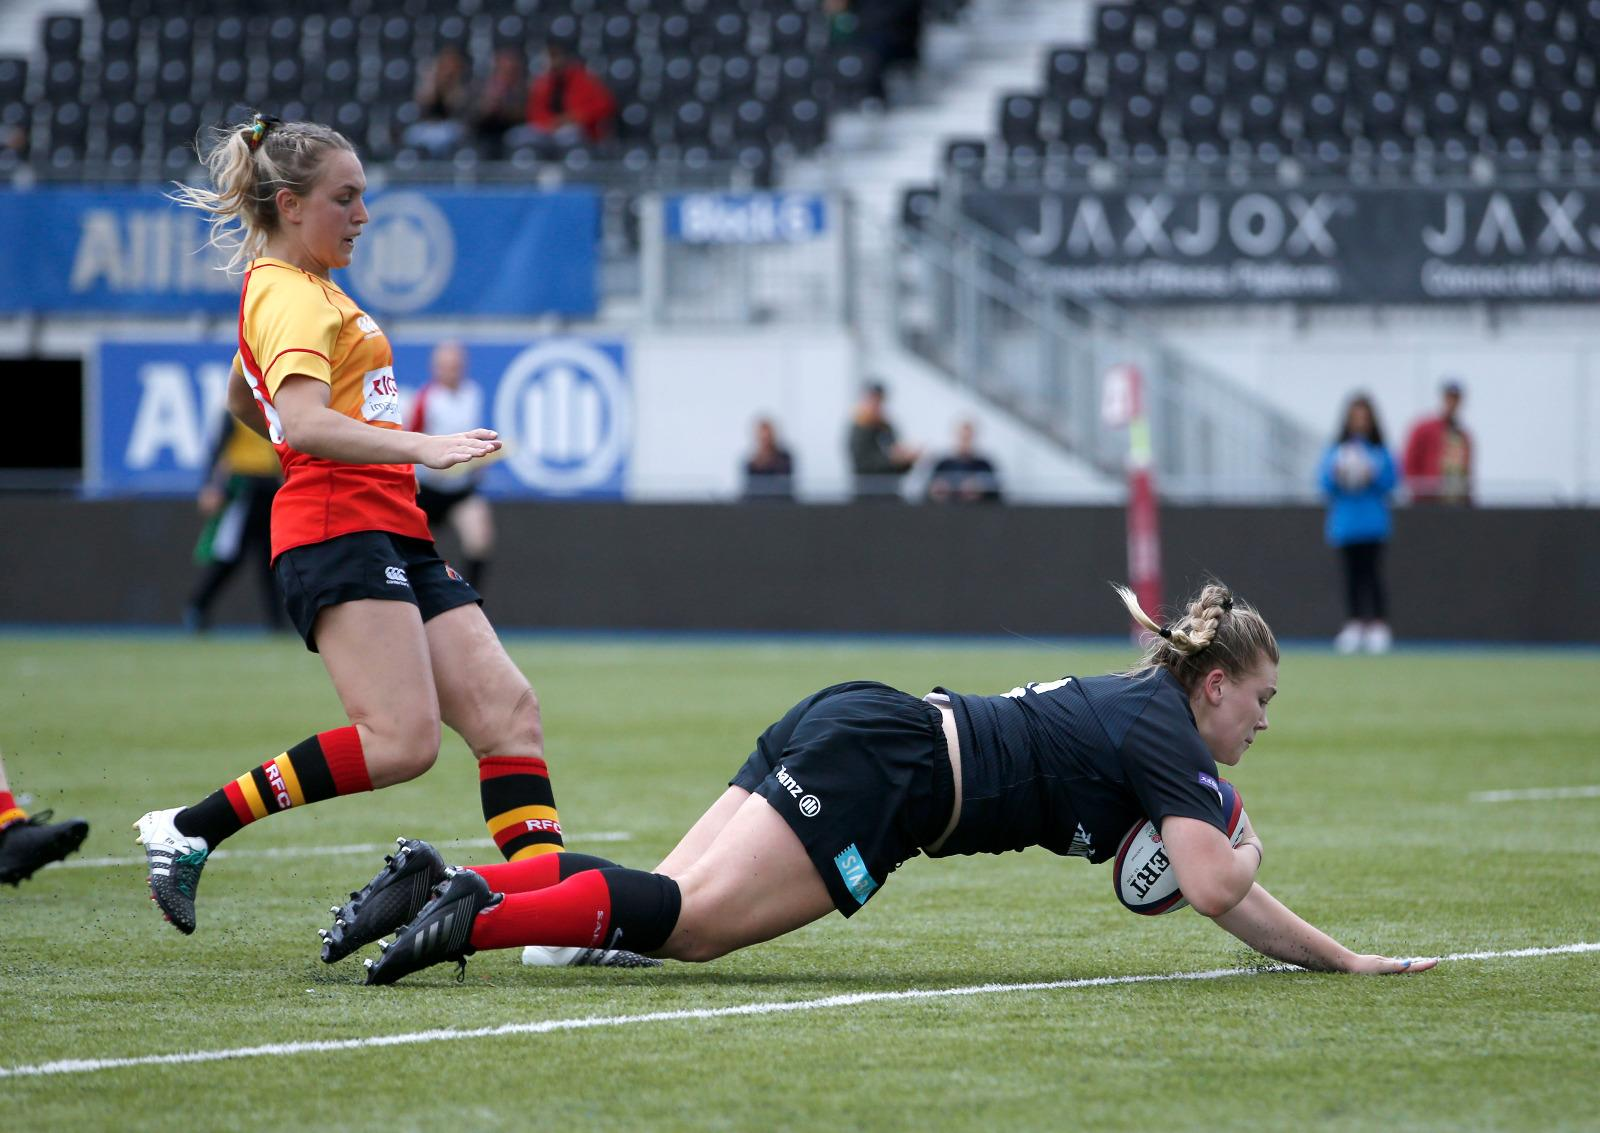 Austerberry disappointed with Saracens' performance despite victory